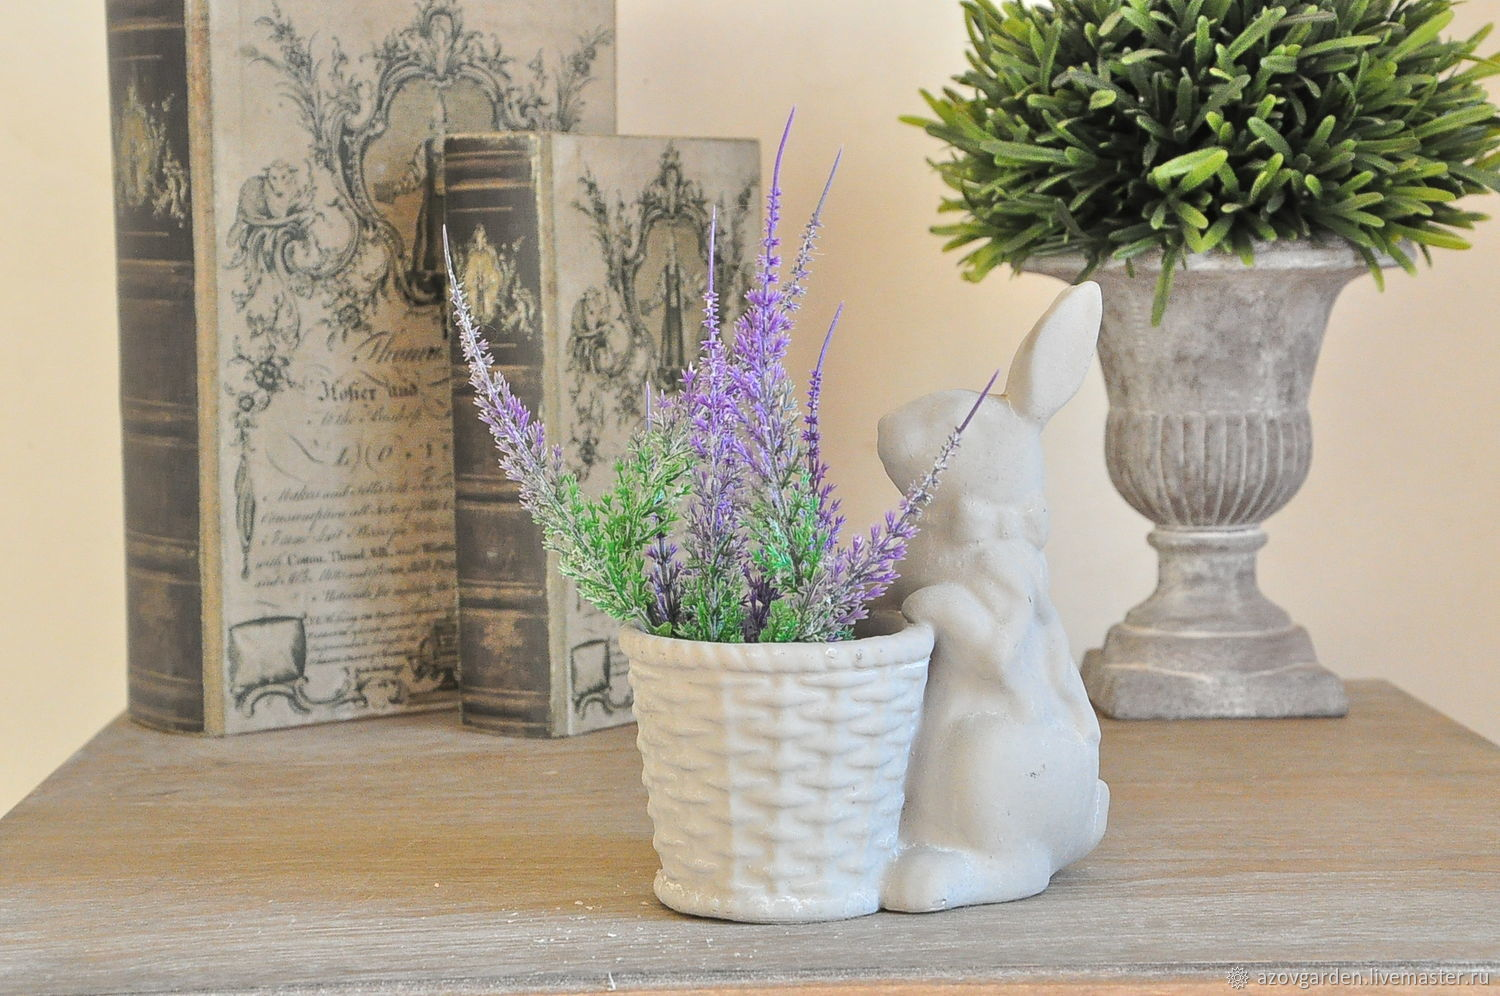 Provence Decoration Hare With Concrete Planters For Interior Decoration Provence Shabby Vintage Shop Online On Livemaster With Shipping